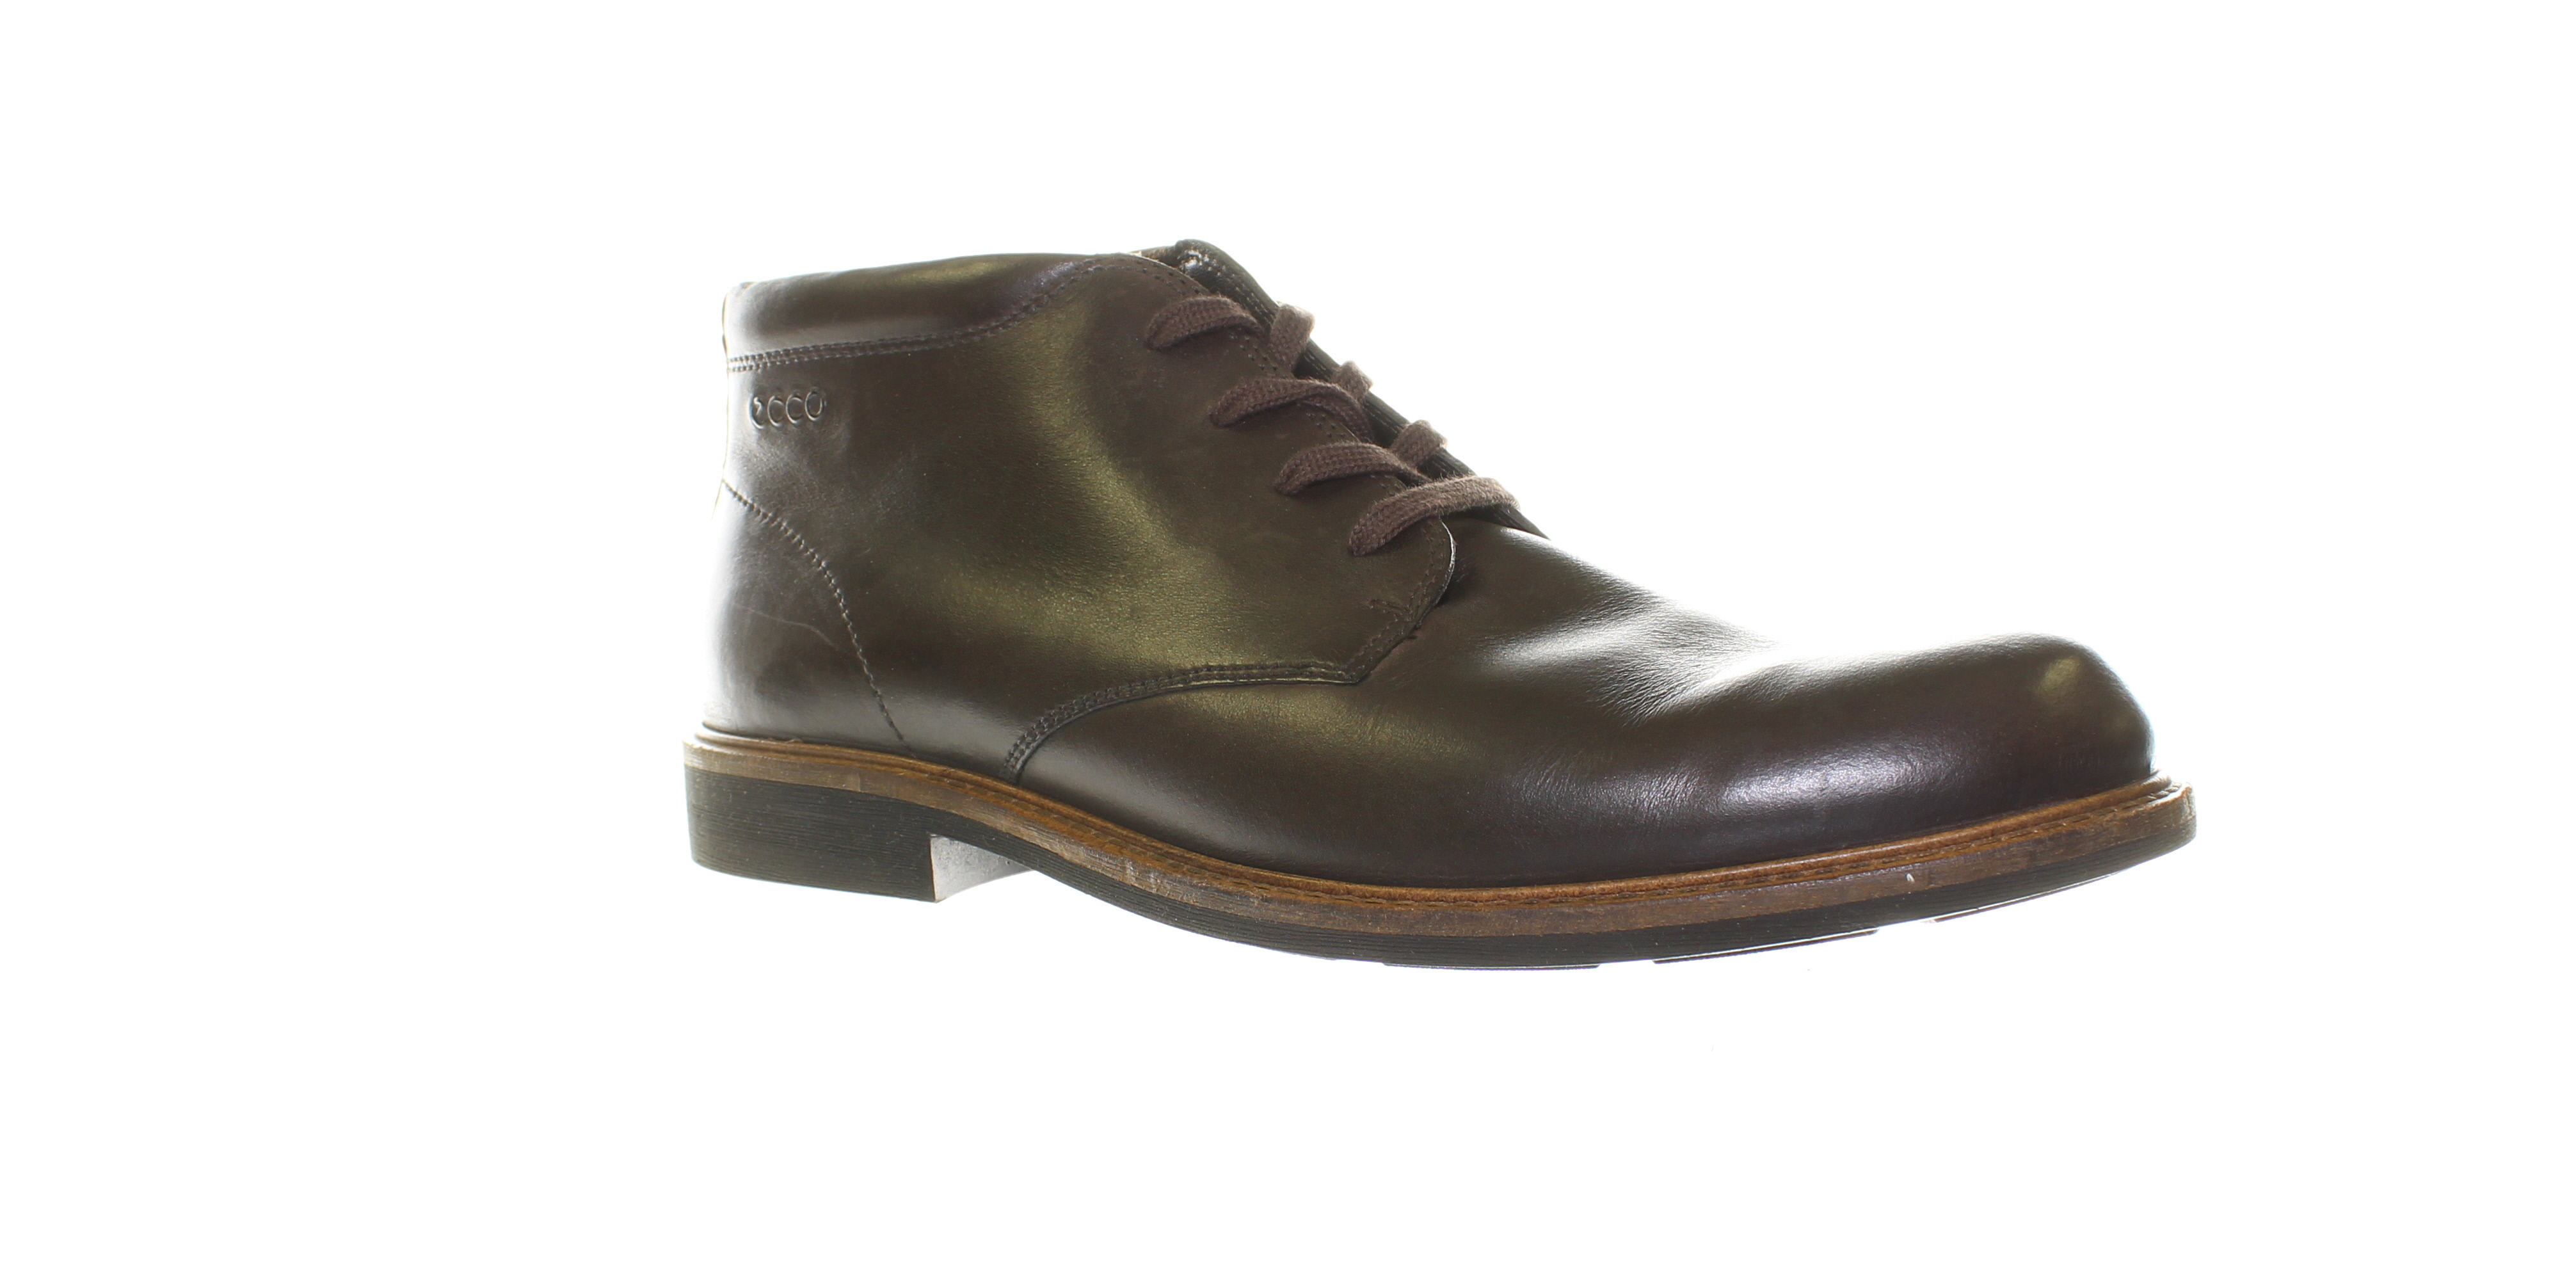 ede961a8 Details about ECCO Mens Turn Gtx Boot Coffee Ankle Boots EUR 44 (450261)